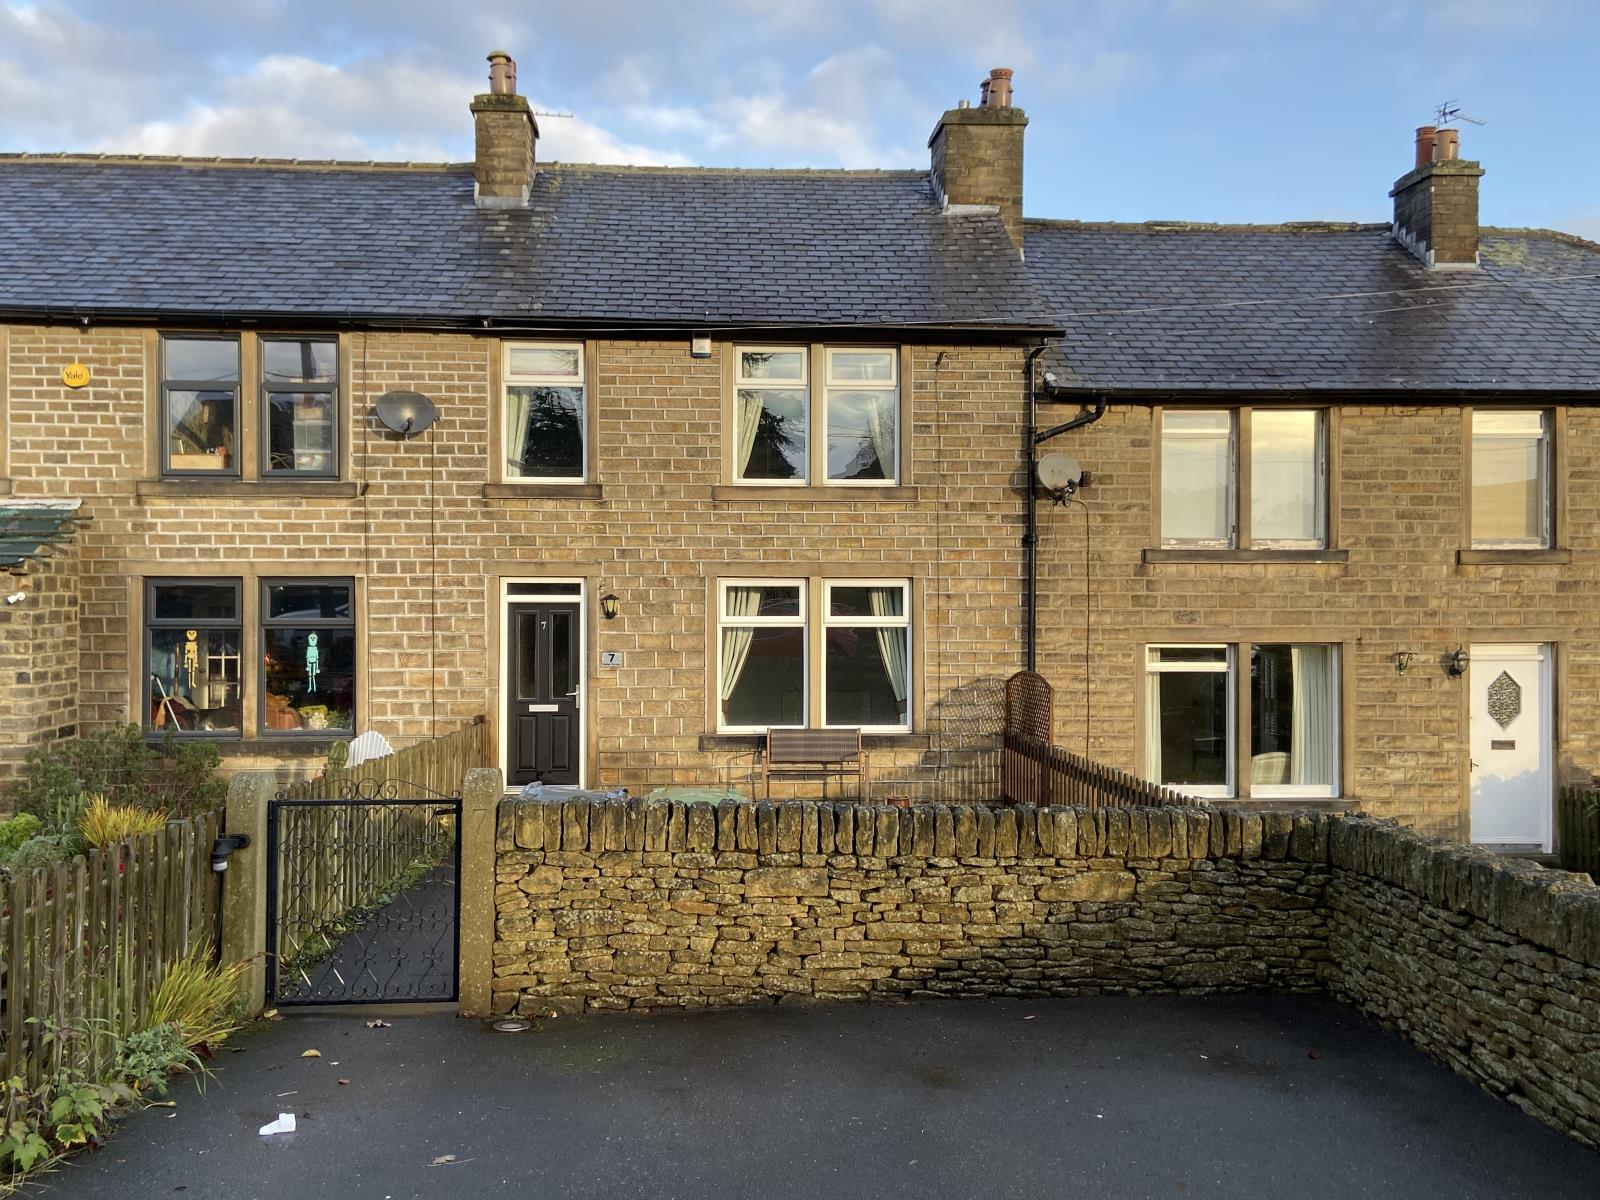 7 Norton Terrace, Stocksmoor, Huddersfield, HD4 6XJ